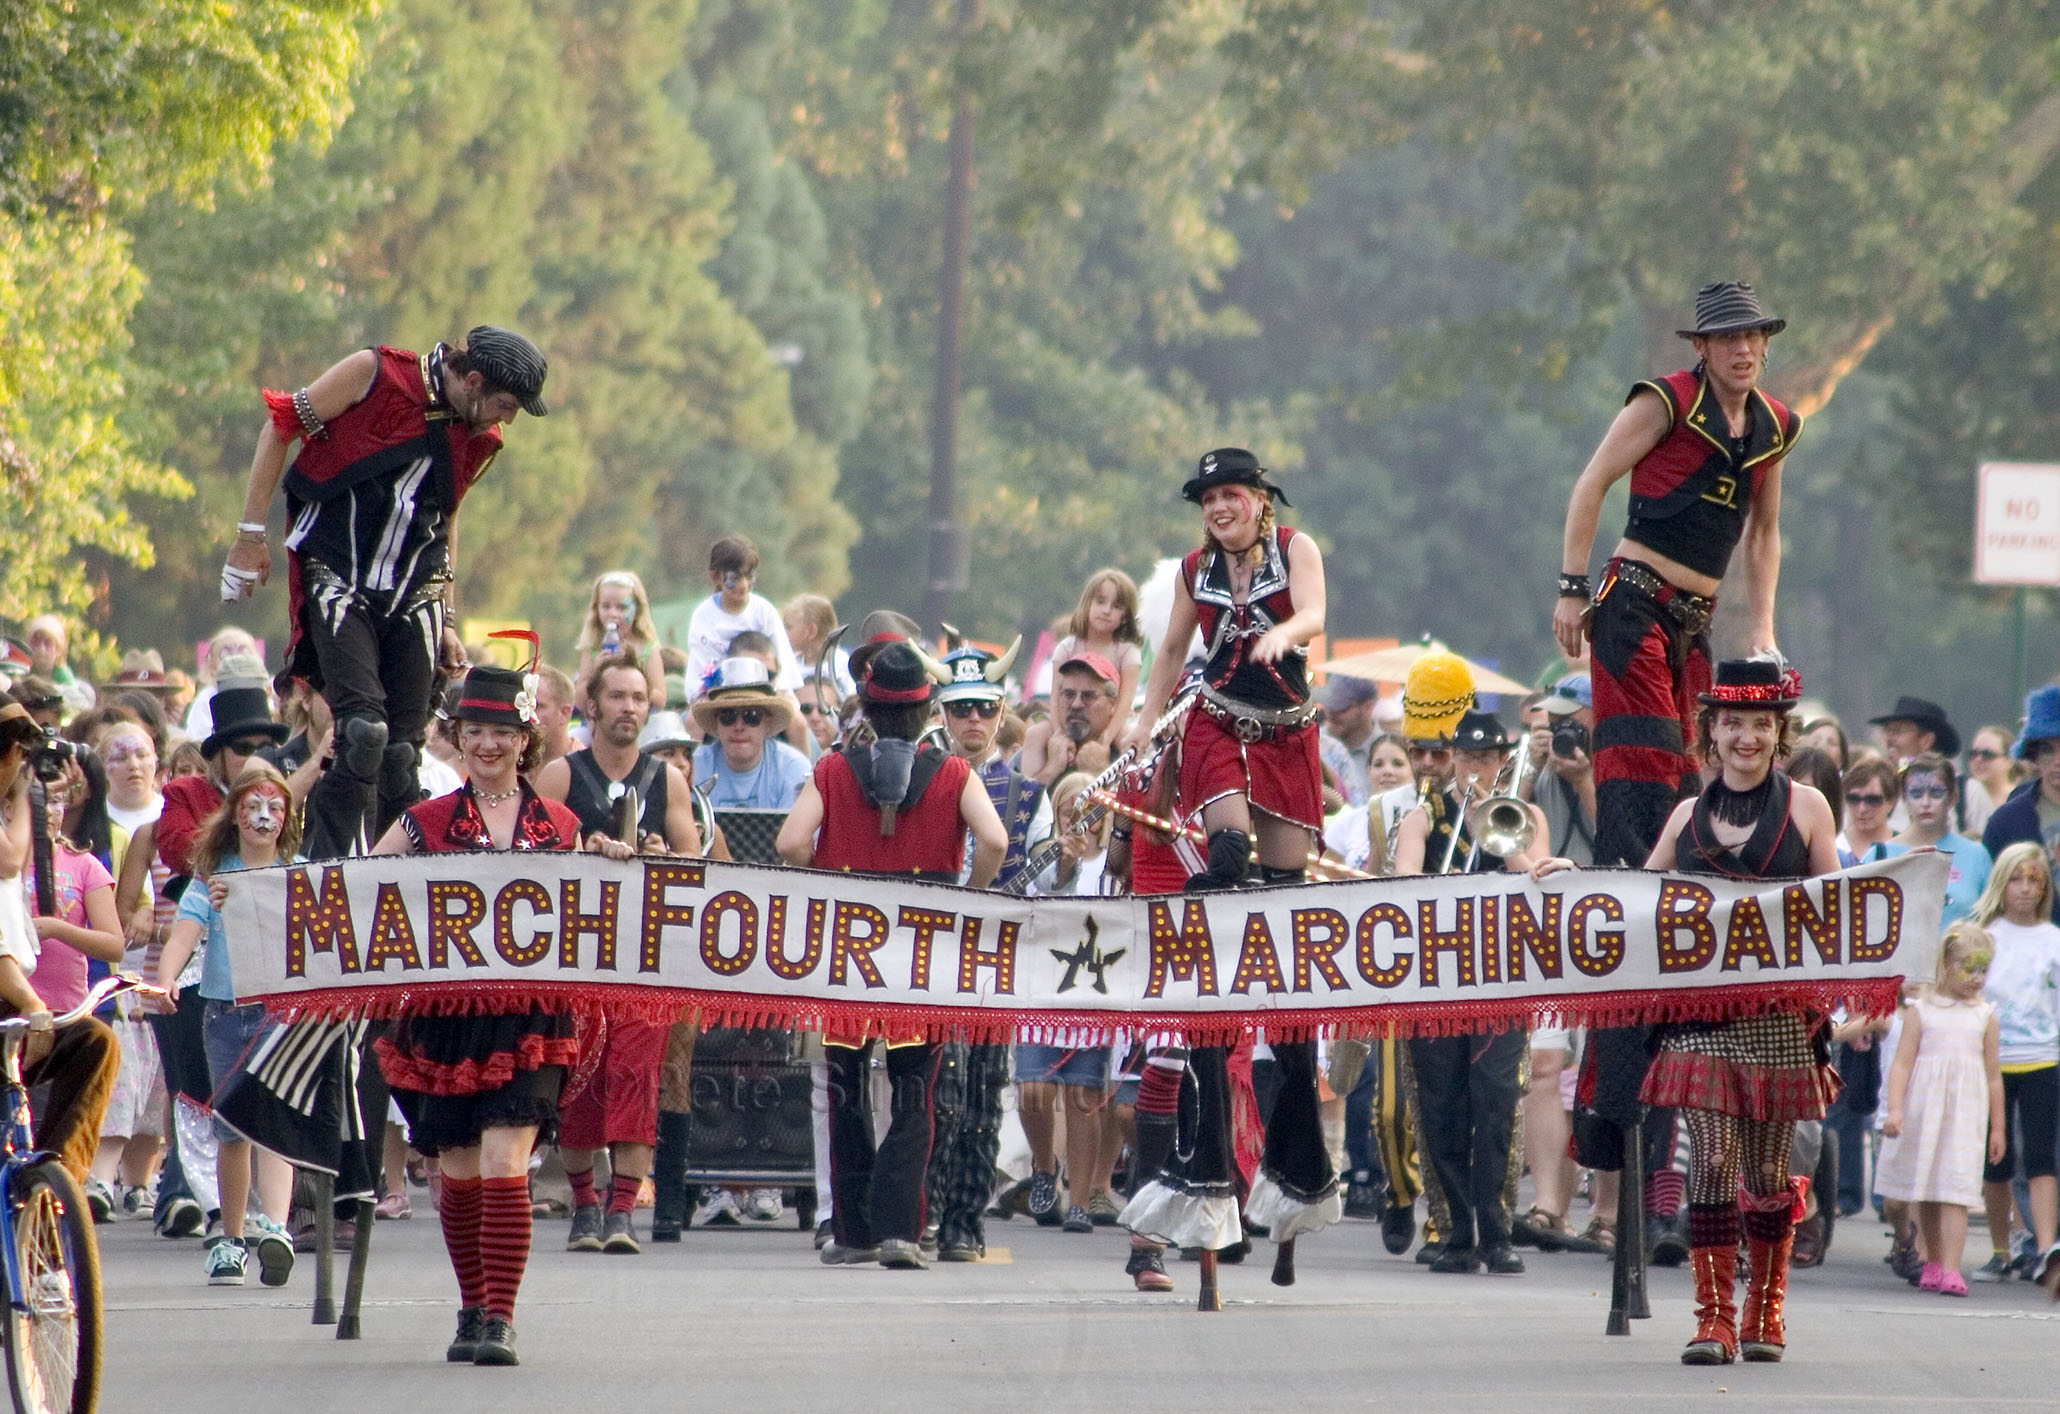 MARCH FOURTH MARCHING BAND:  Bass drummer Dan Stauffer says, Bike more, drive less.